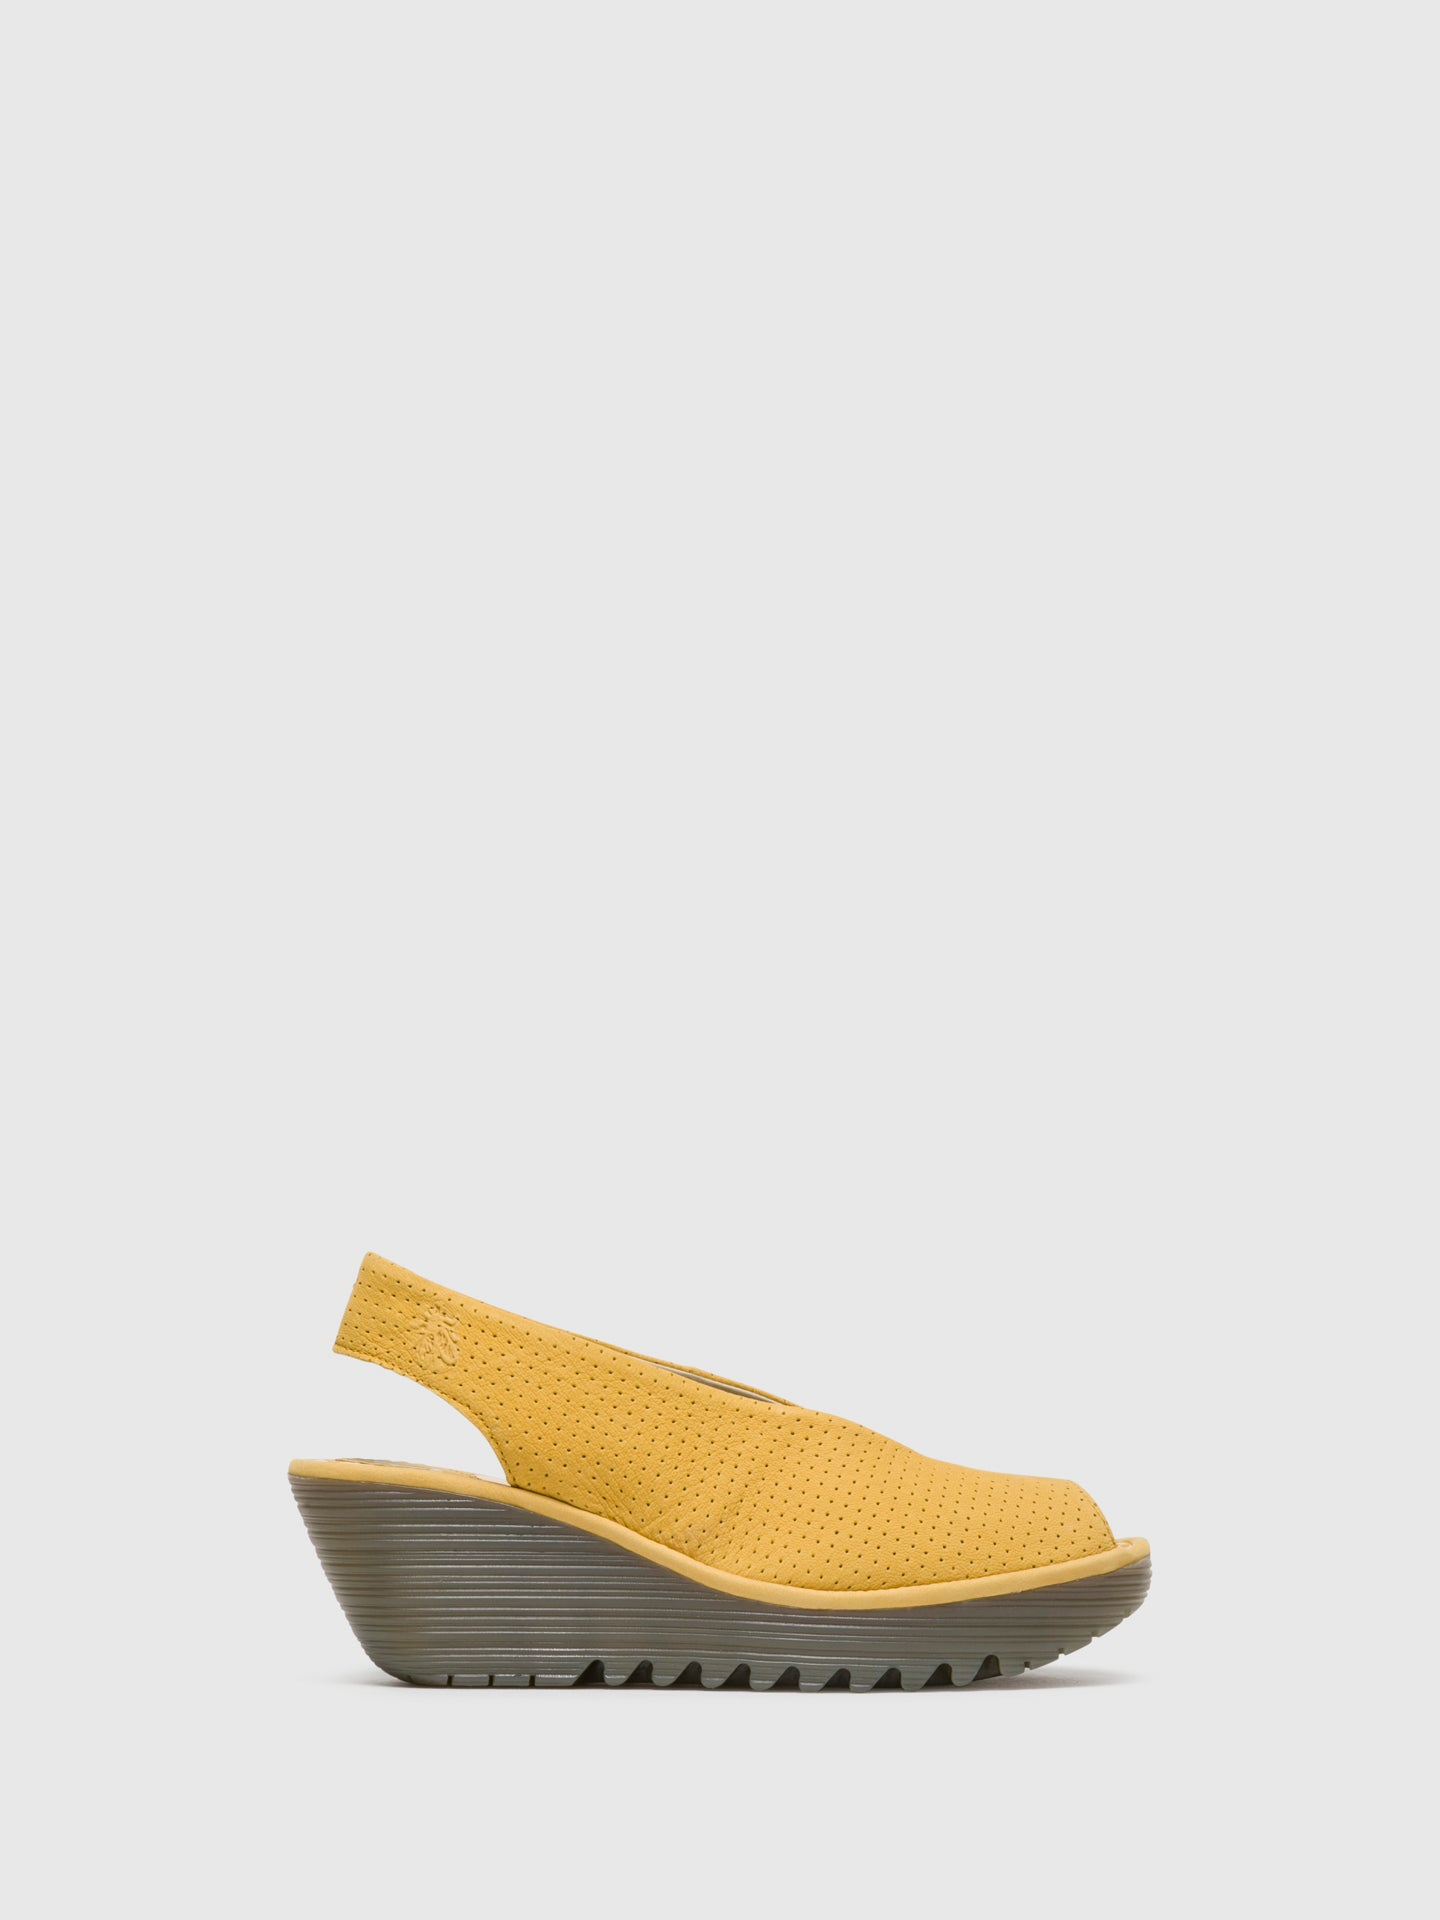 Fly London Yellow Sling-Back Sandals